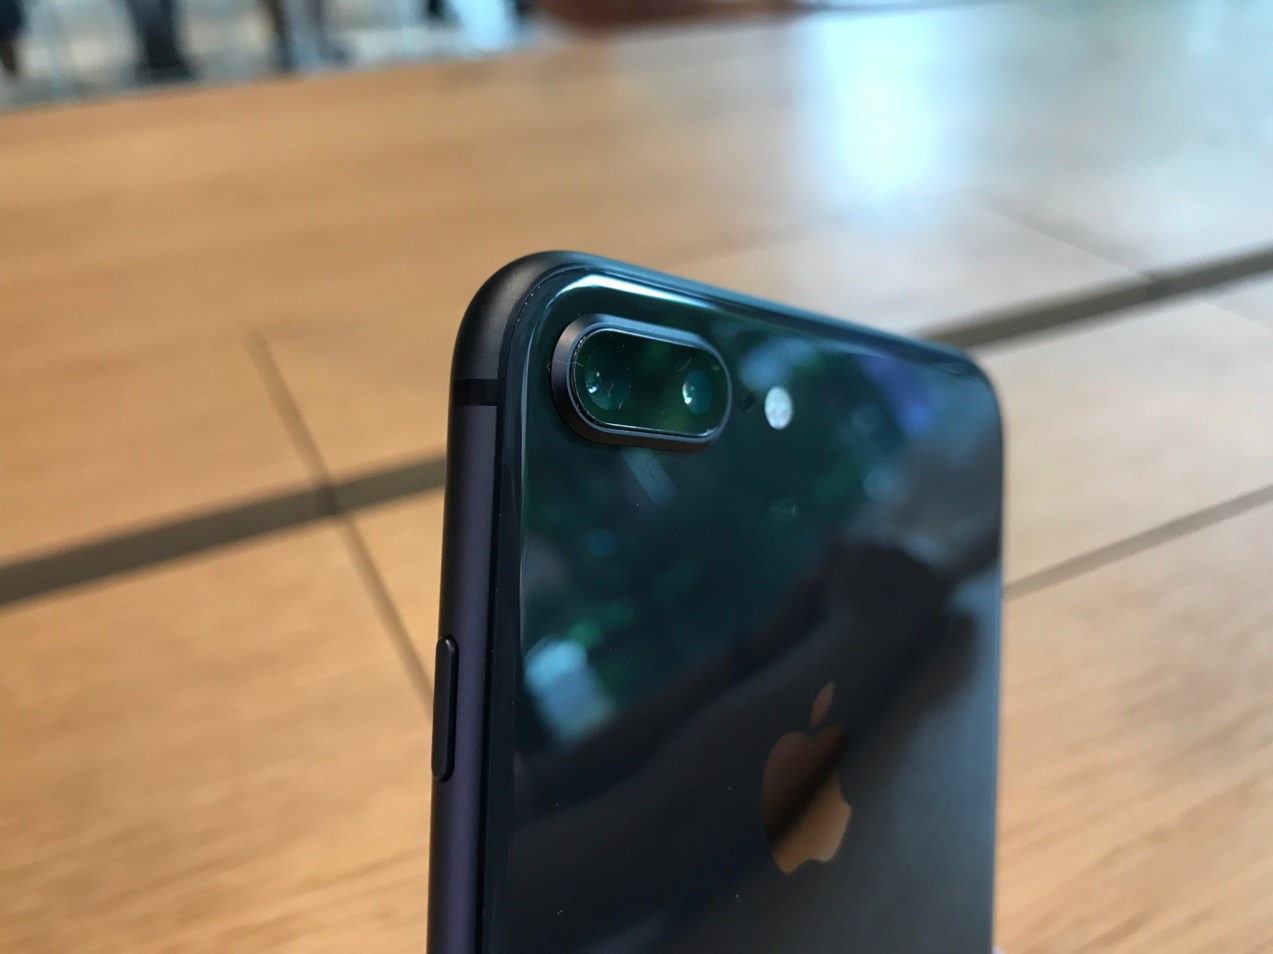 Space Gray Iphone 8 Plus Unboxing Photos Dus Box Kotak Note Full Set Antenna Bands